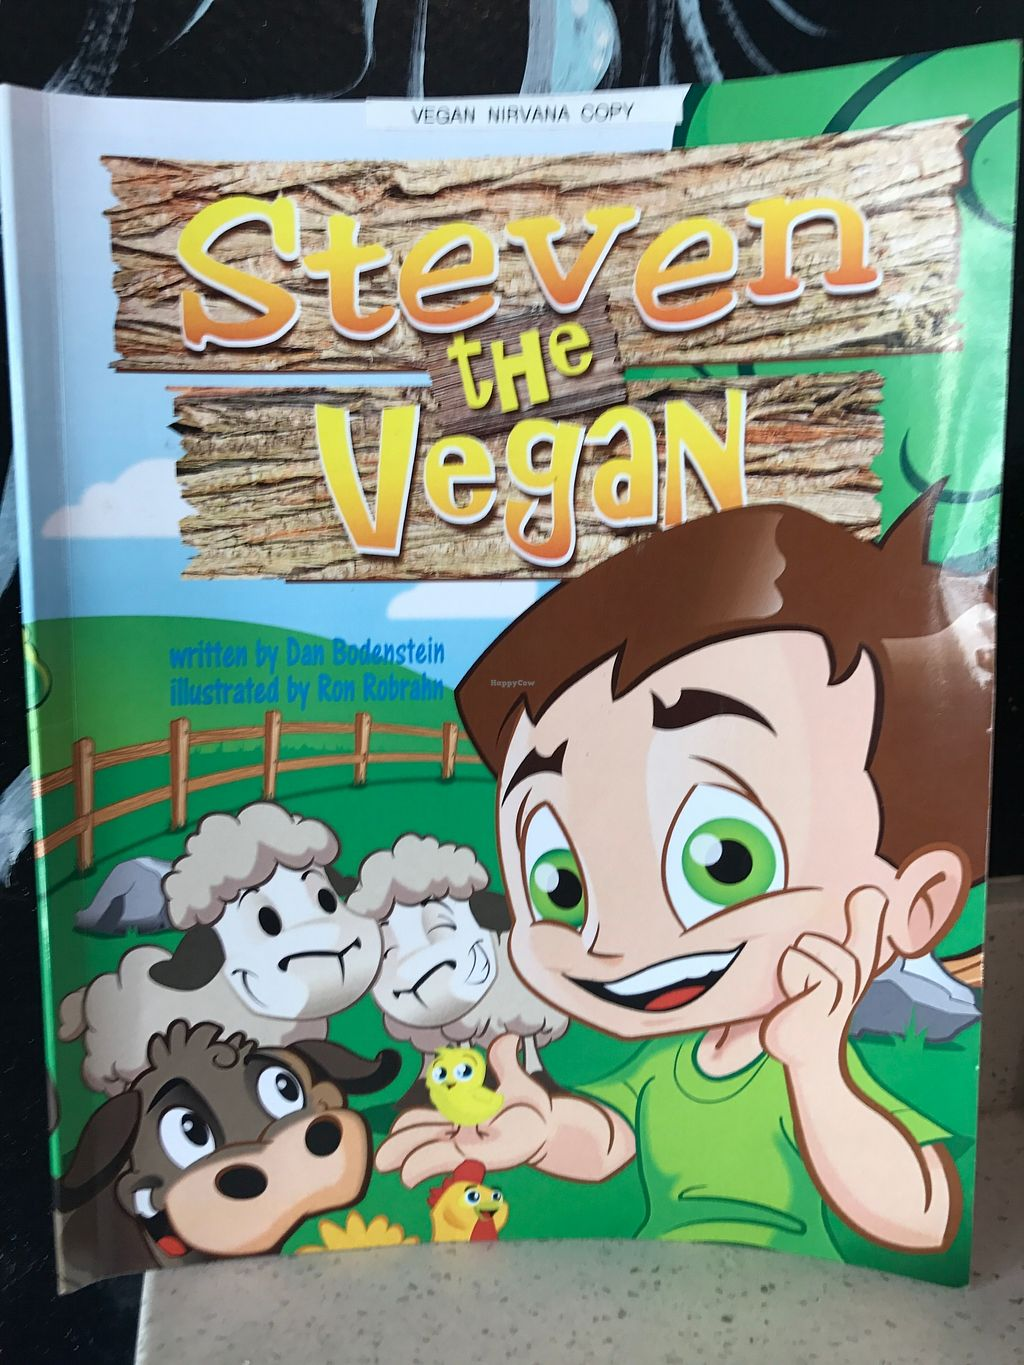 "Photo of Vegan Nirvana  by <a href=""/members/profile/BlendedFruit"">BlendedFruit</a> <br/>Steven the Vegan book was on display and read at Vegan Nirvana <br/> January 5, 2018  - <a href='/contact/abuse/image/54773/343154'>Report</a>"